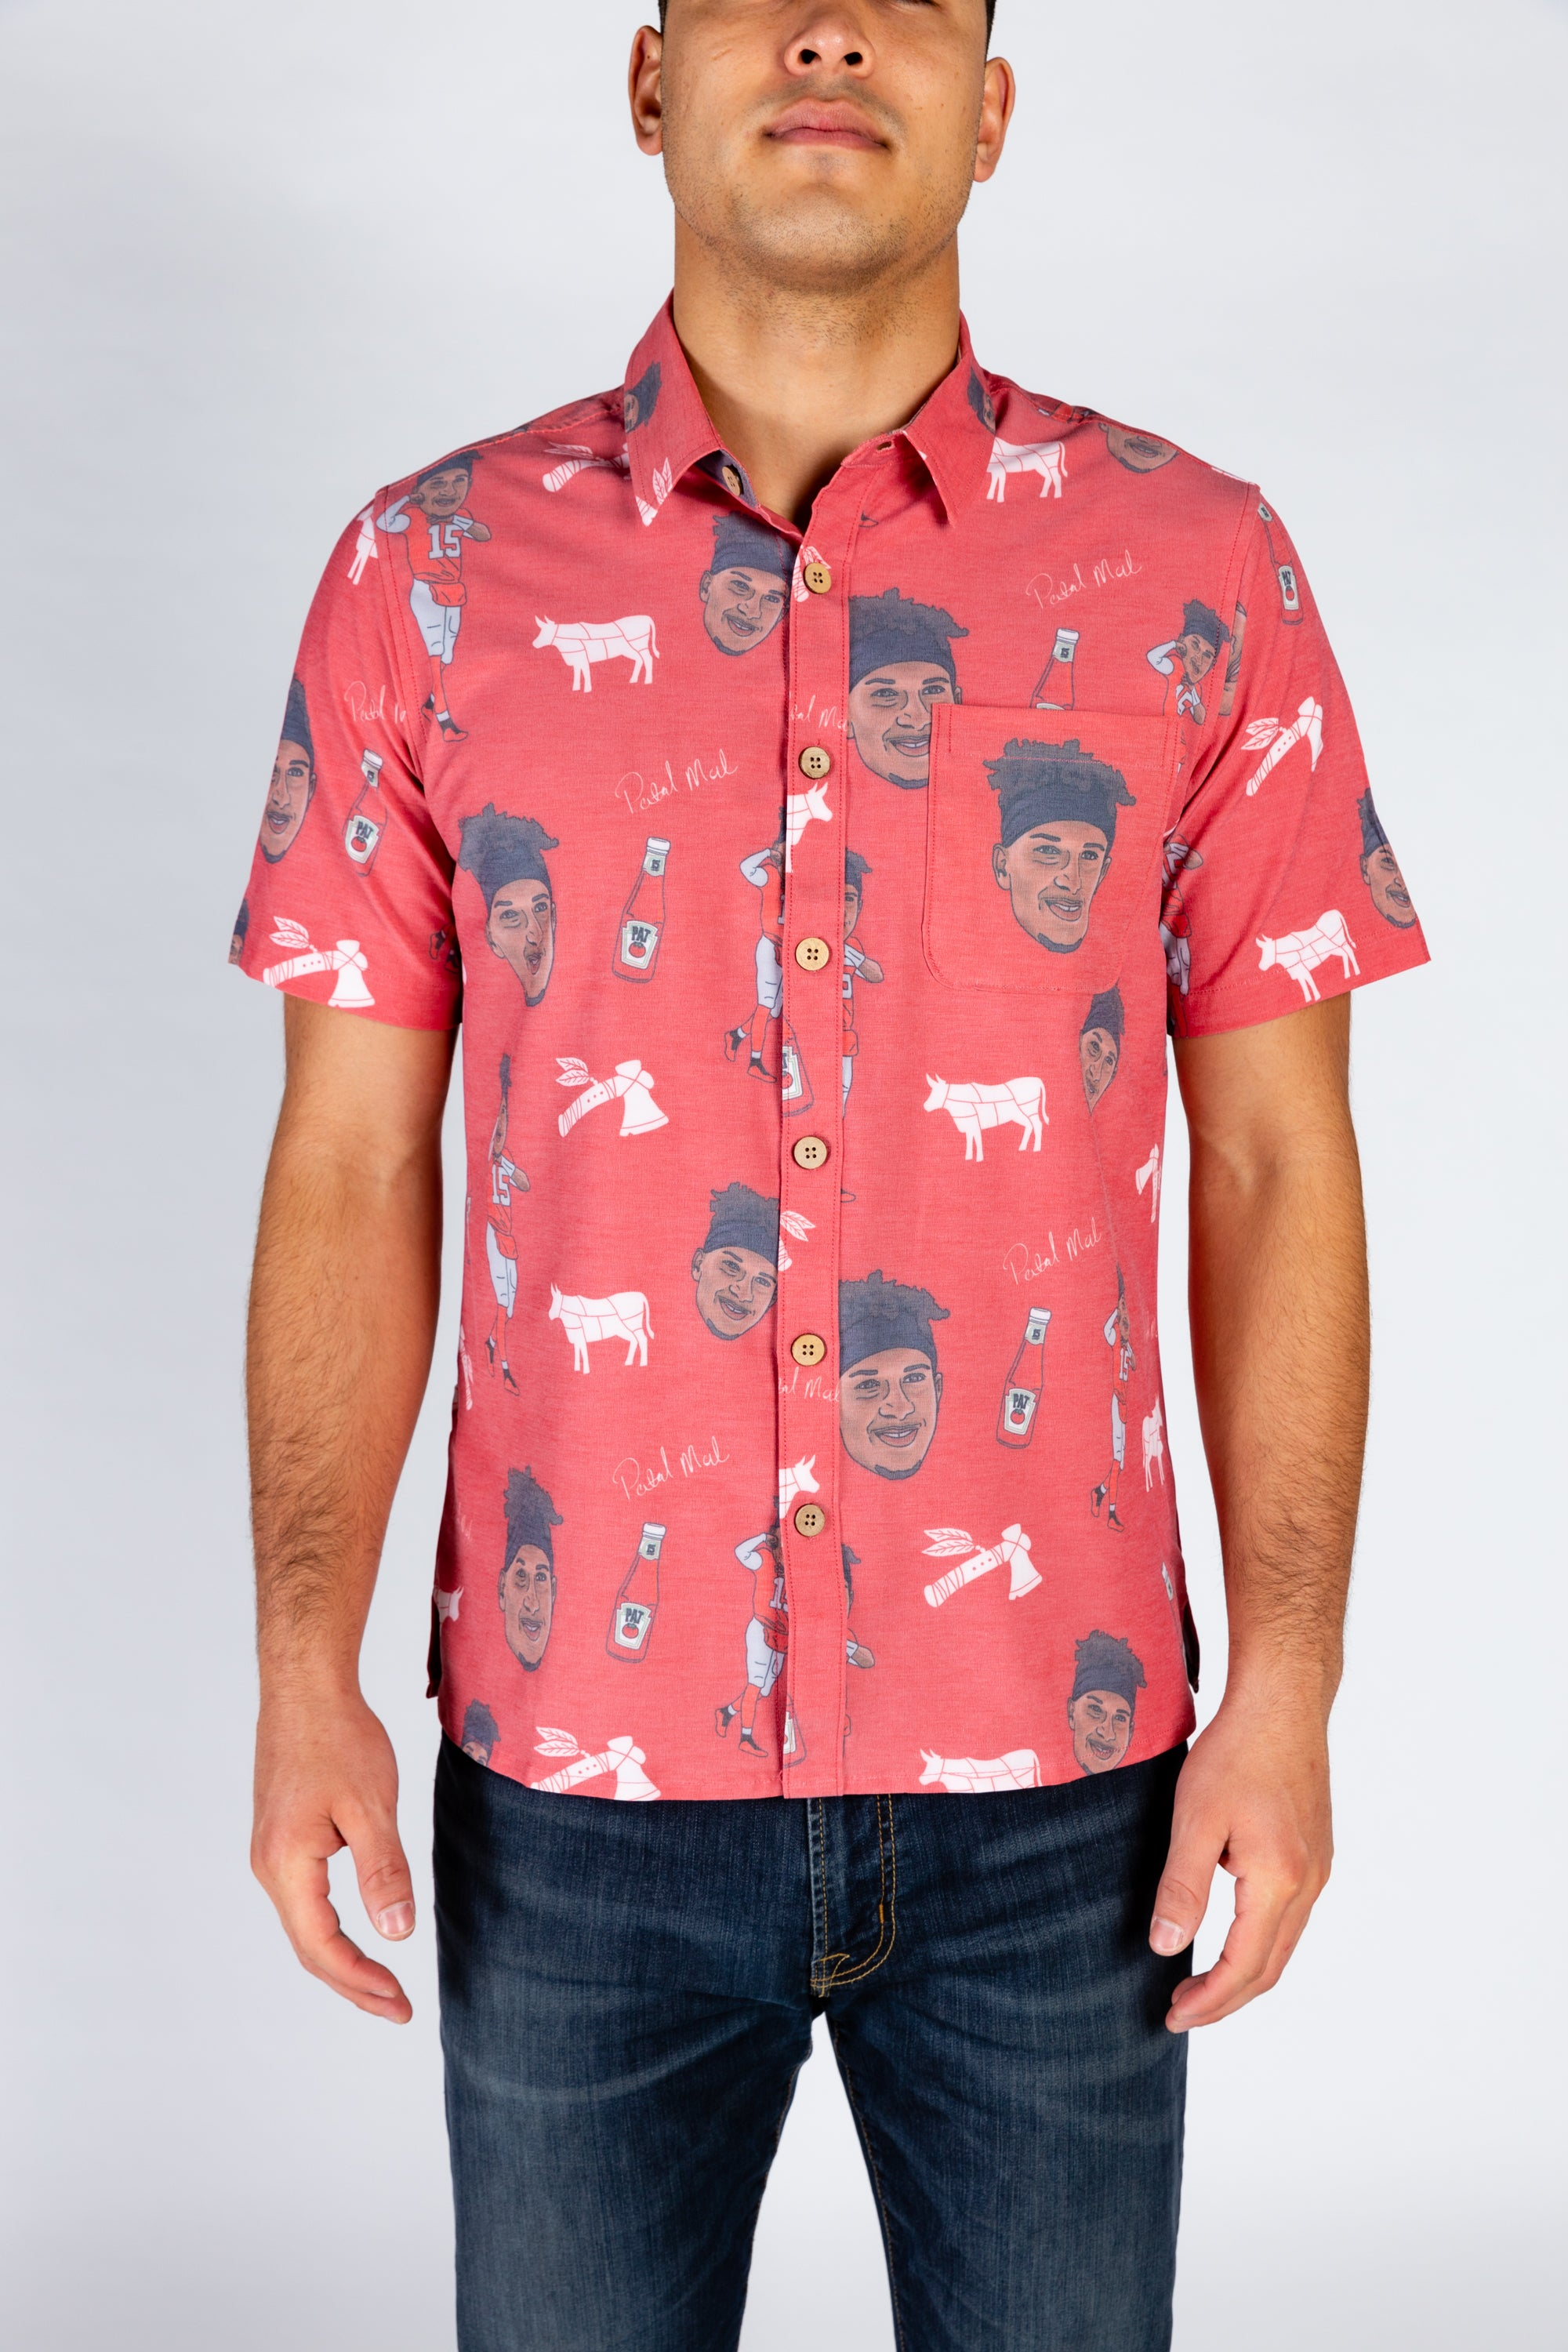 The Patrick Mahomes | Red Tomahawk Hawaiian Shirt